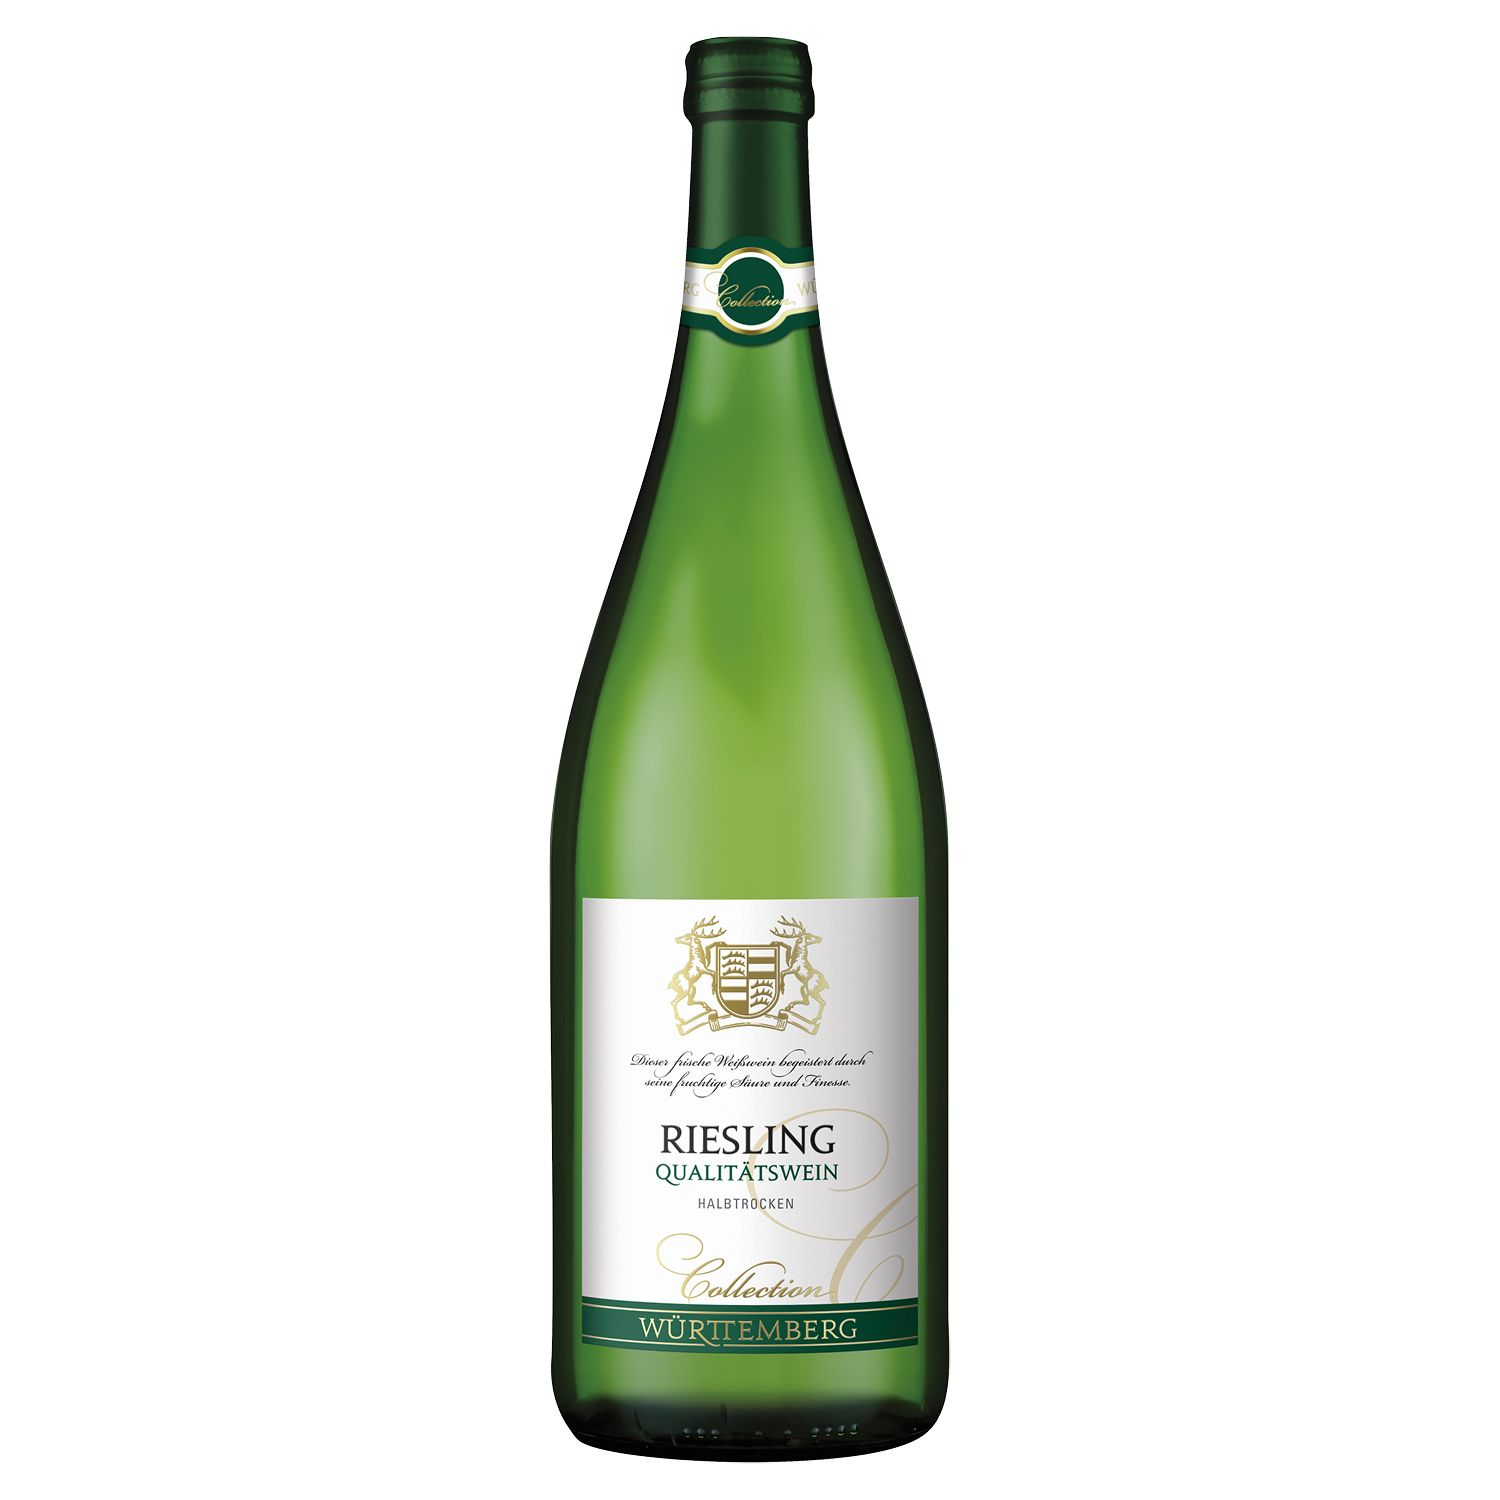 COLLECTION WÜRTTEMBERG Riesling Qualitätswein QbA 1l